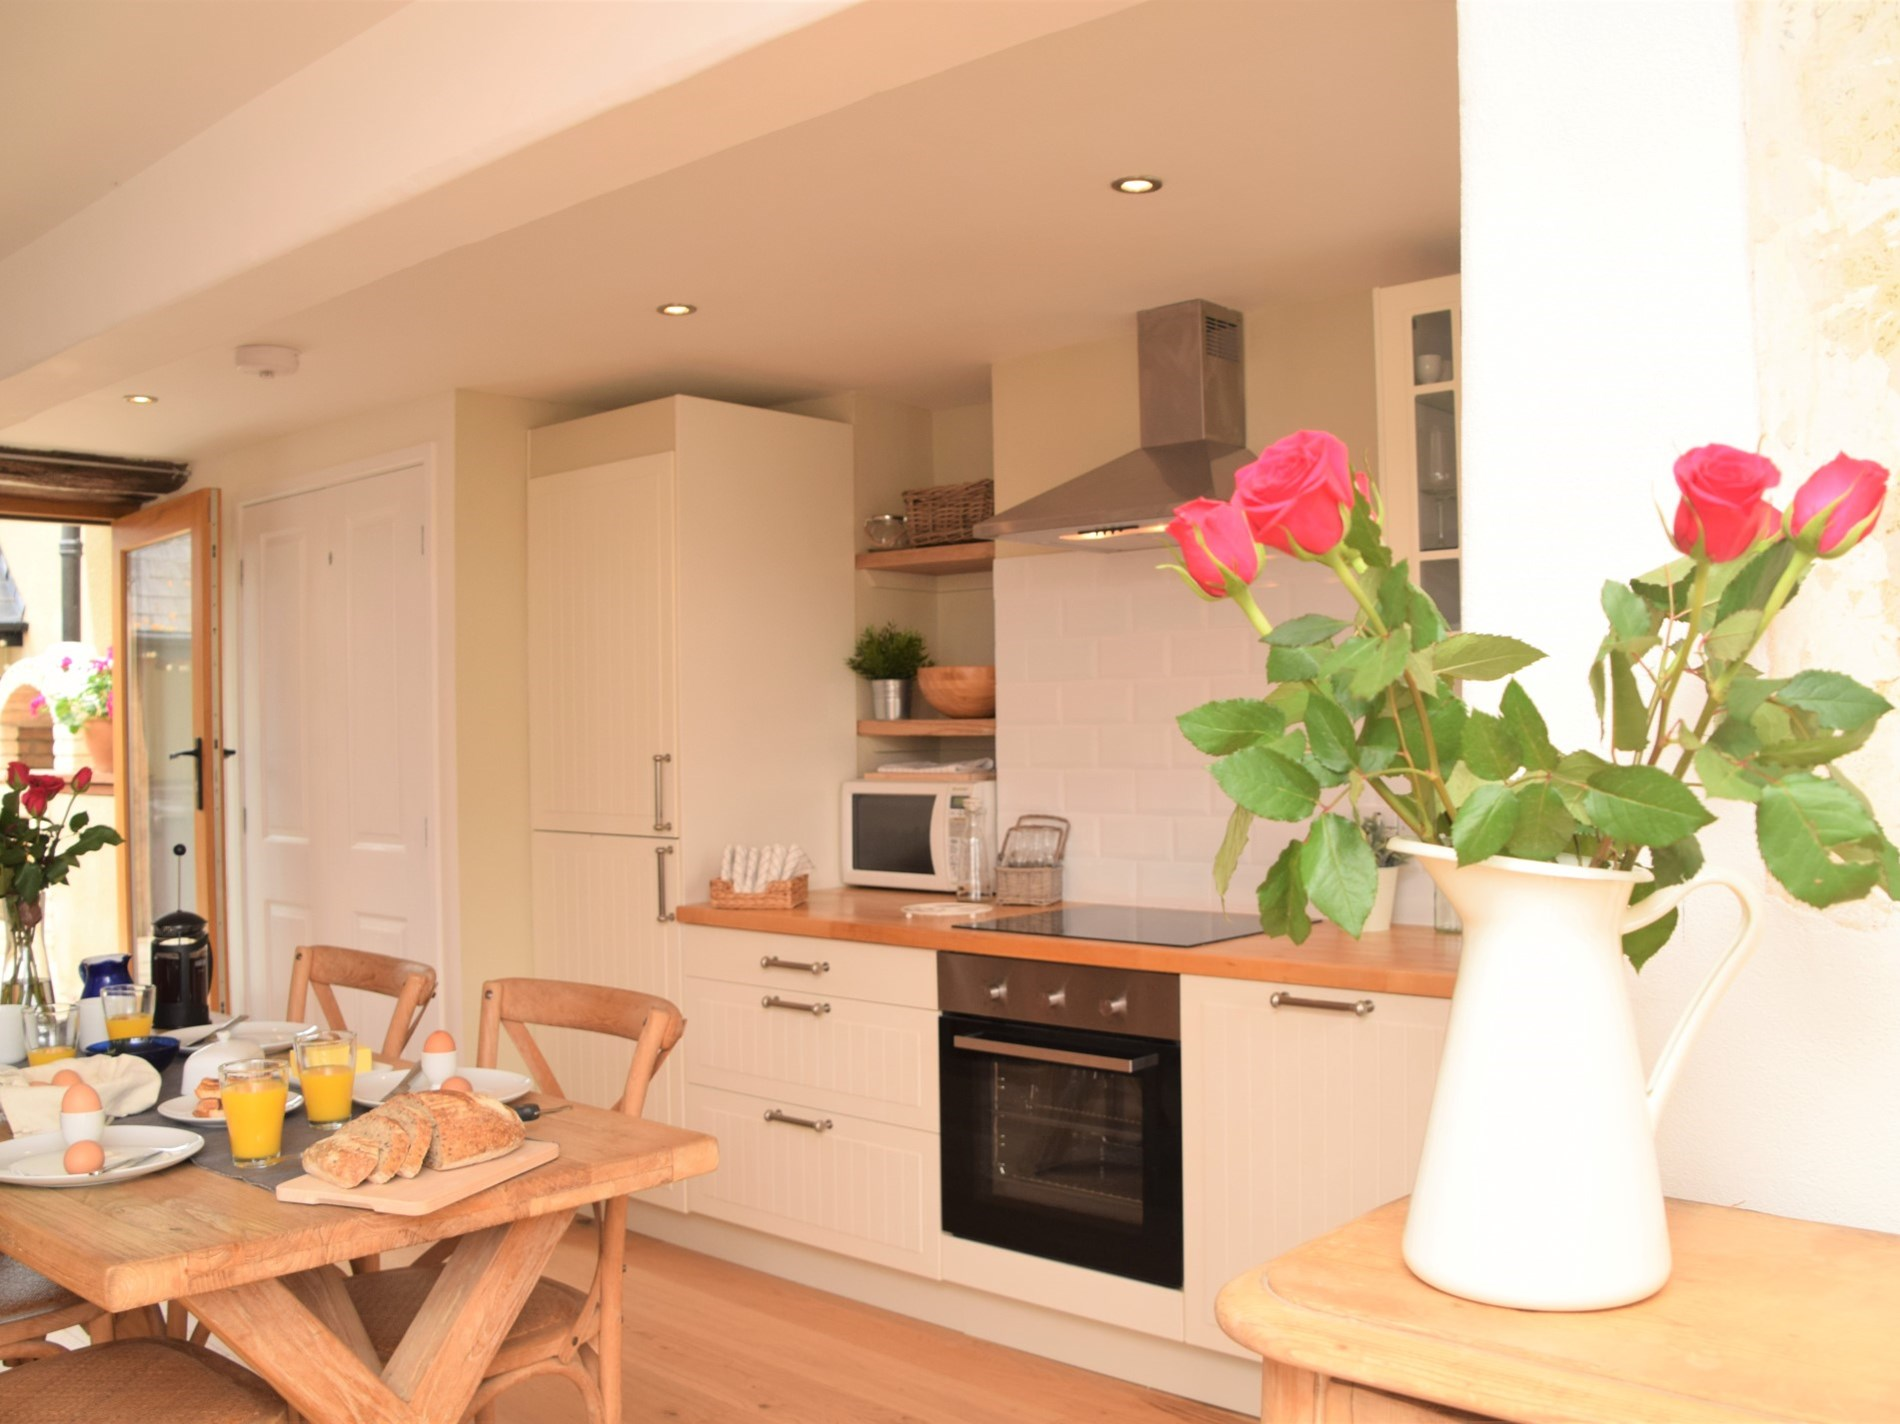 3 Bedroom Cottage in Newton Abbot, Devon